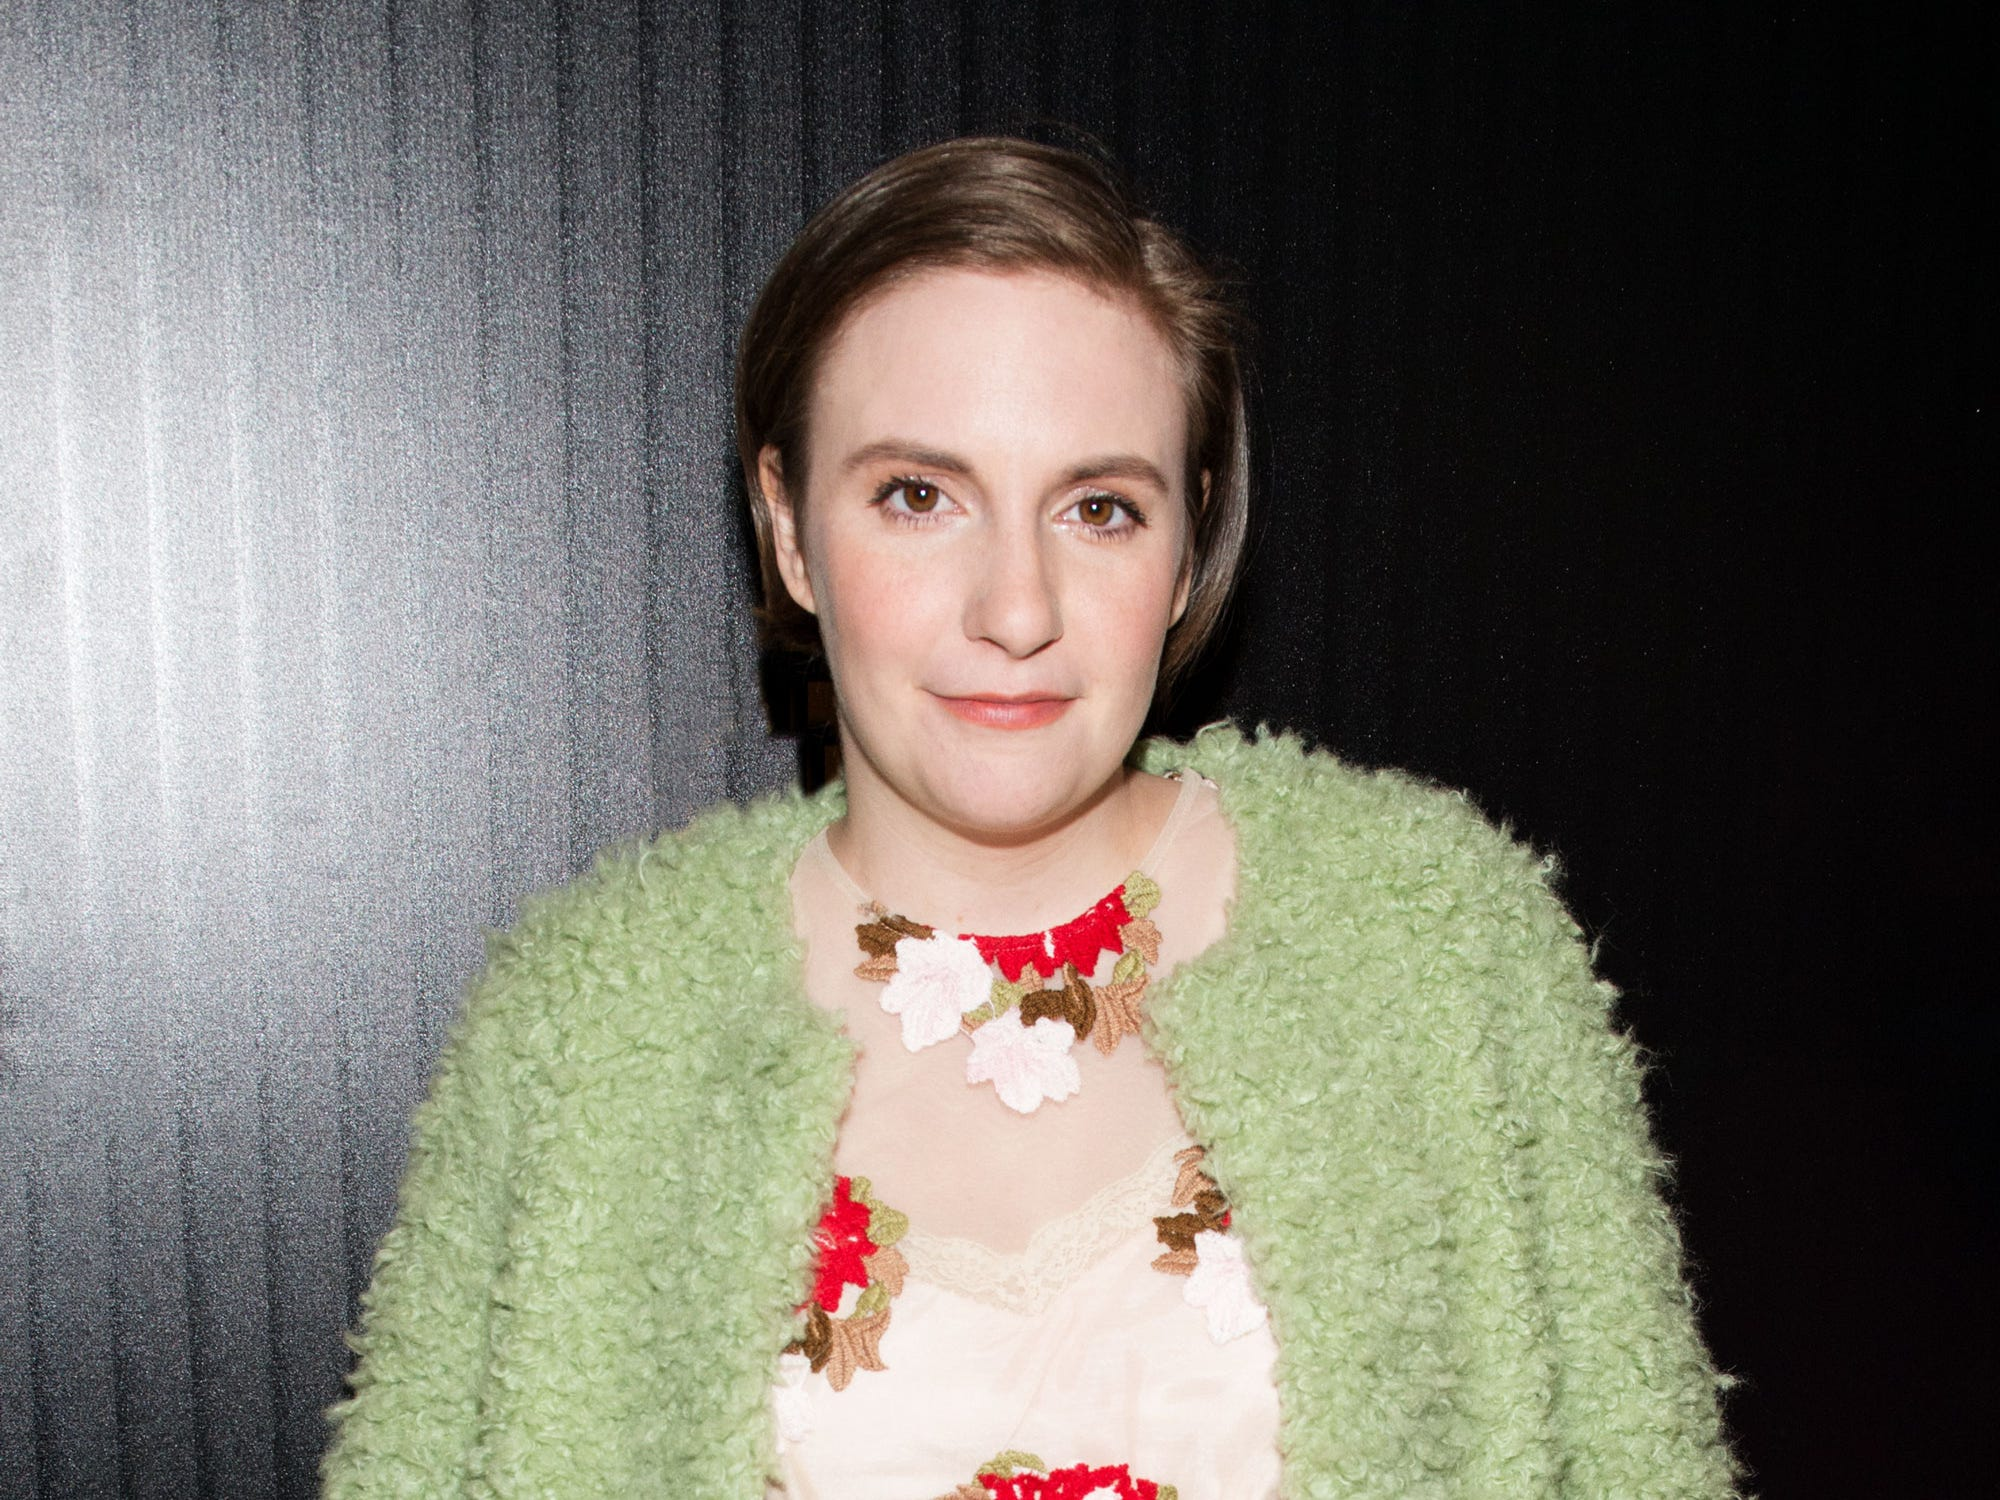 Lena Dunham Haircut Bangs Celebrity Haircuts